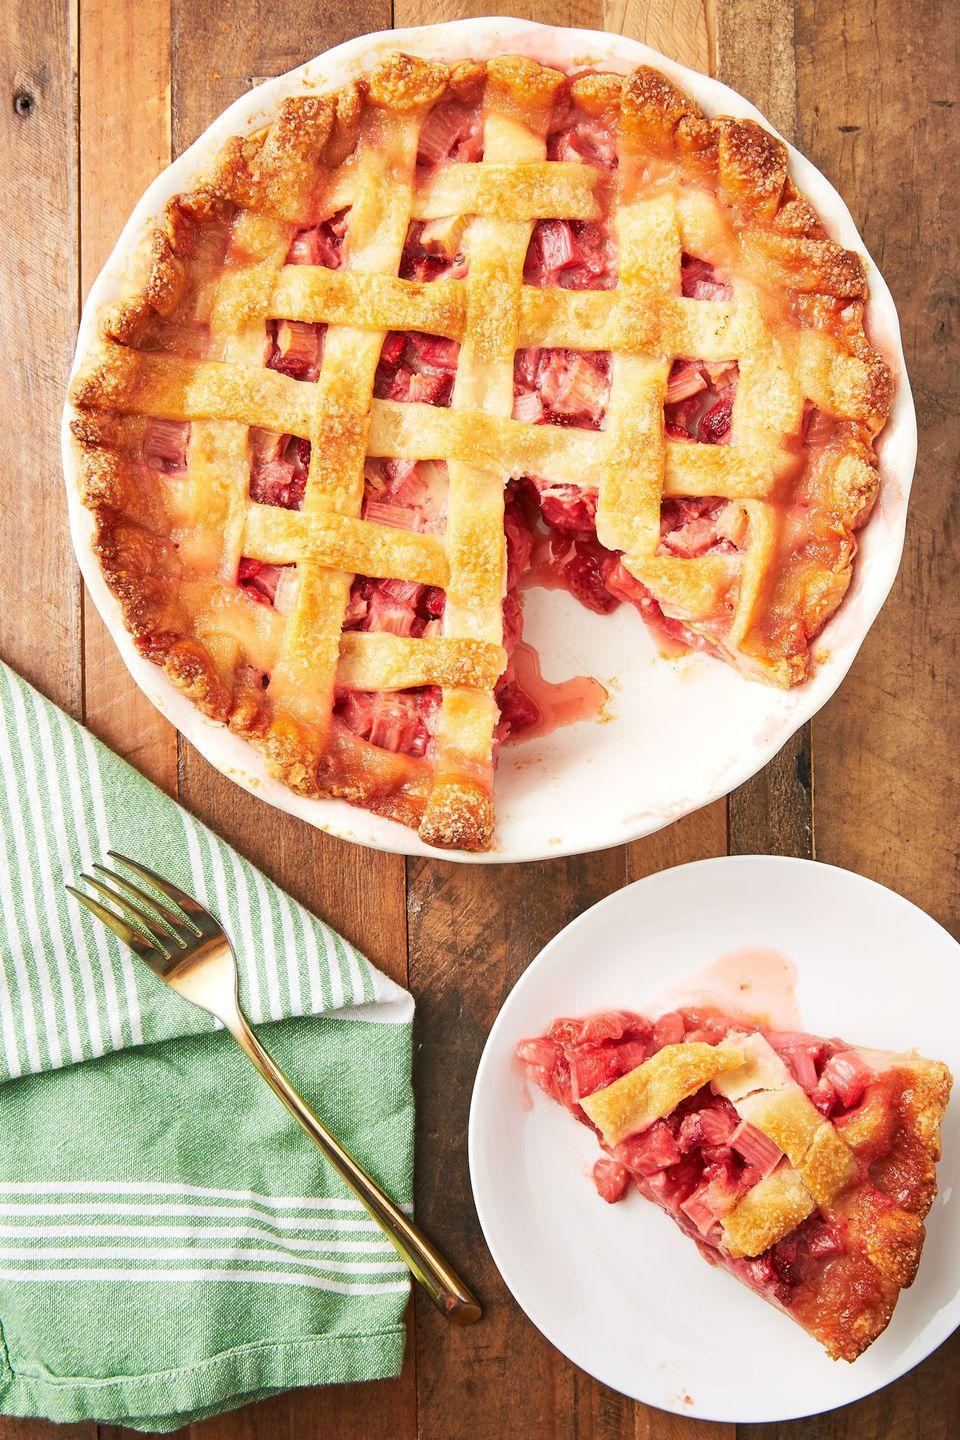 "<p>Everyone's favorite springtime pie. </p><p>Get the recipe from <a href=""https://www.delish.com/cooking/recipe-ideas/recipes/a53154/best-strawberry-rhubarb-pie-recipe/"" rel=""nofollow noopener"" target=""_blank"" data-ylk=""slk:Delish"" class=""link rapid-noclick-resp"">Delish</a>. </p>"